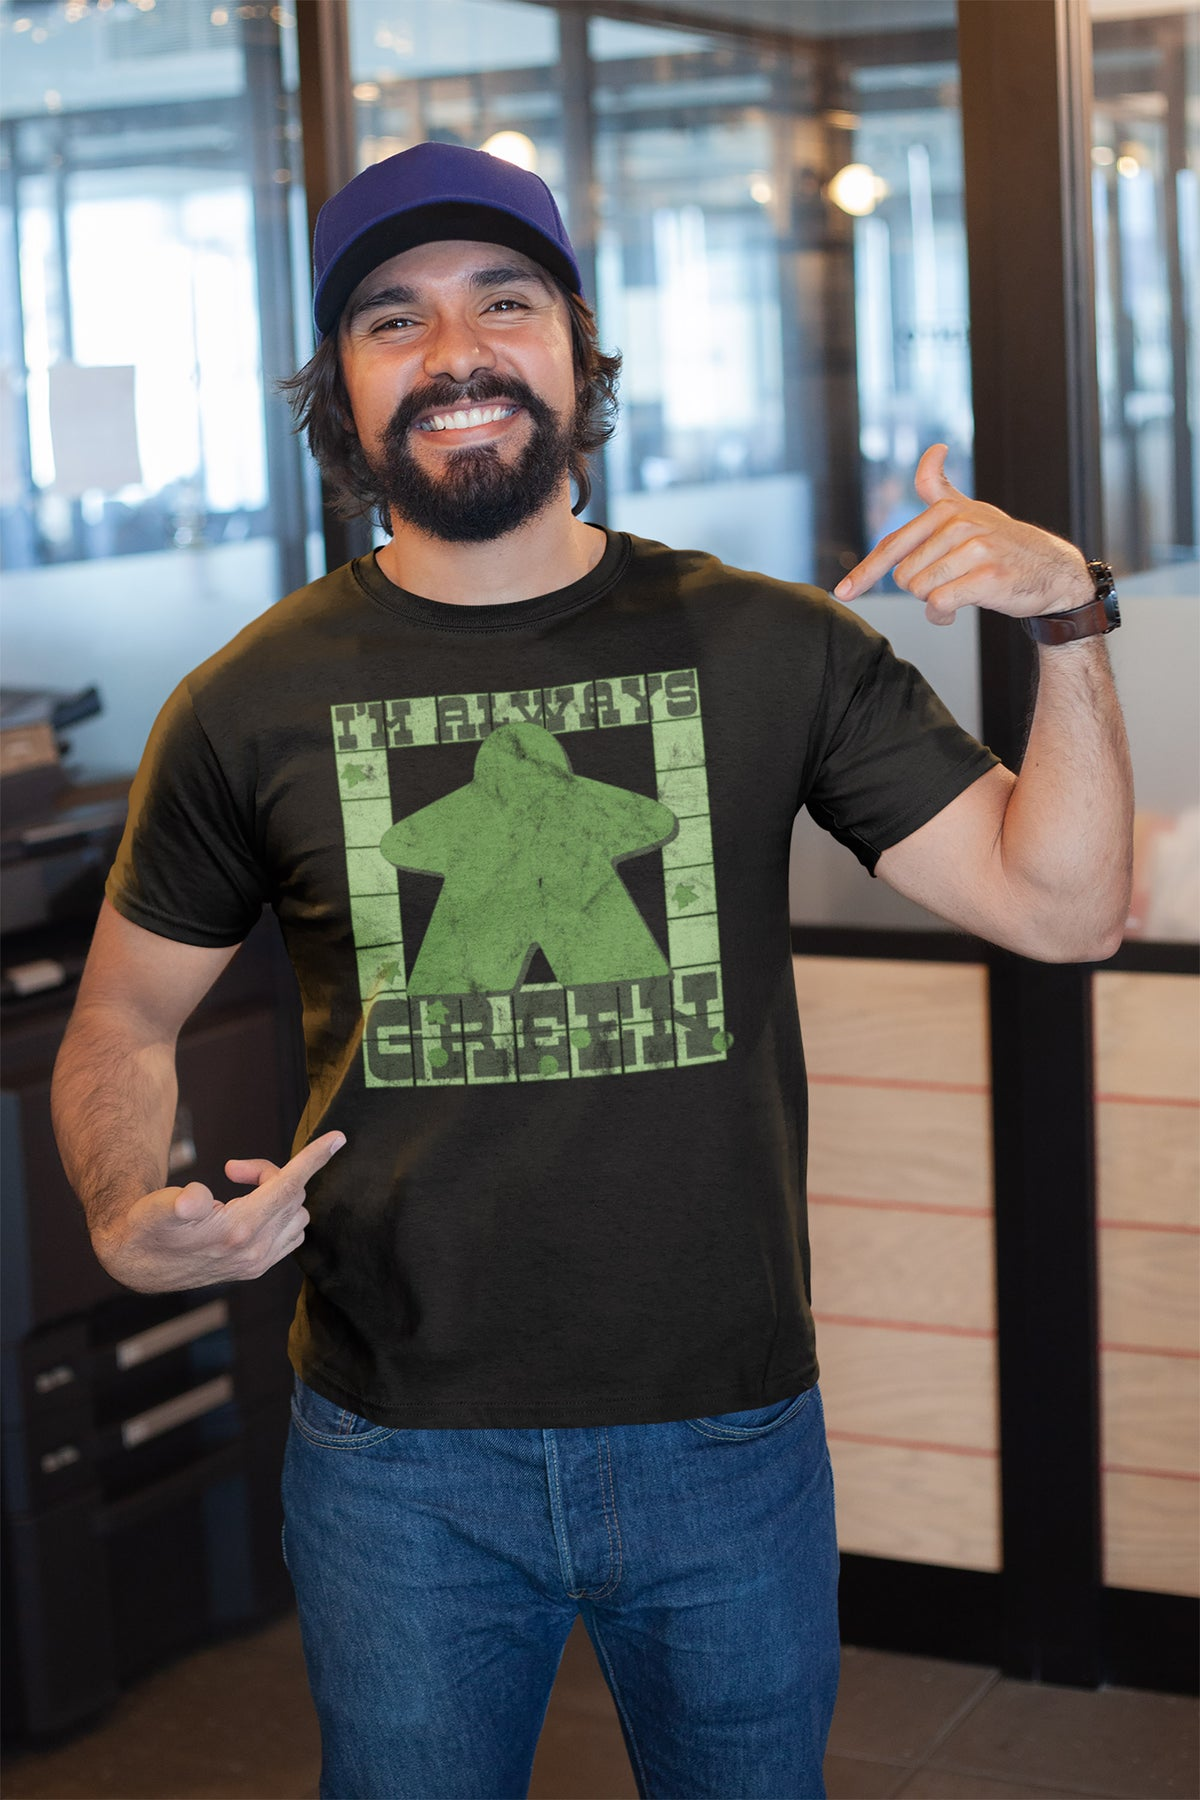 I'm Always Green Meeple Board Game T-Shirt Action Shot Men's